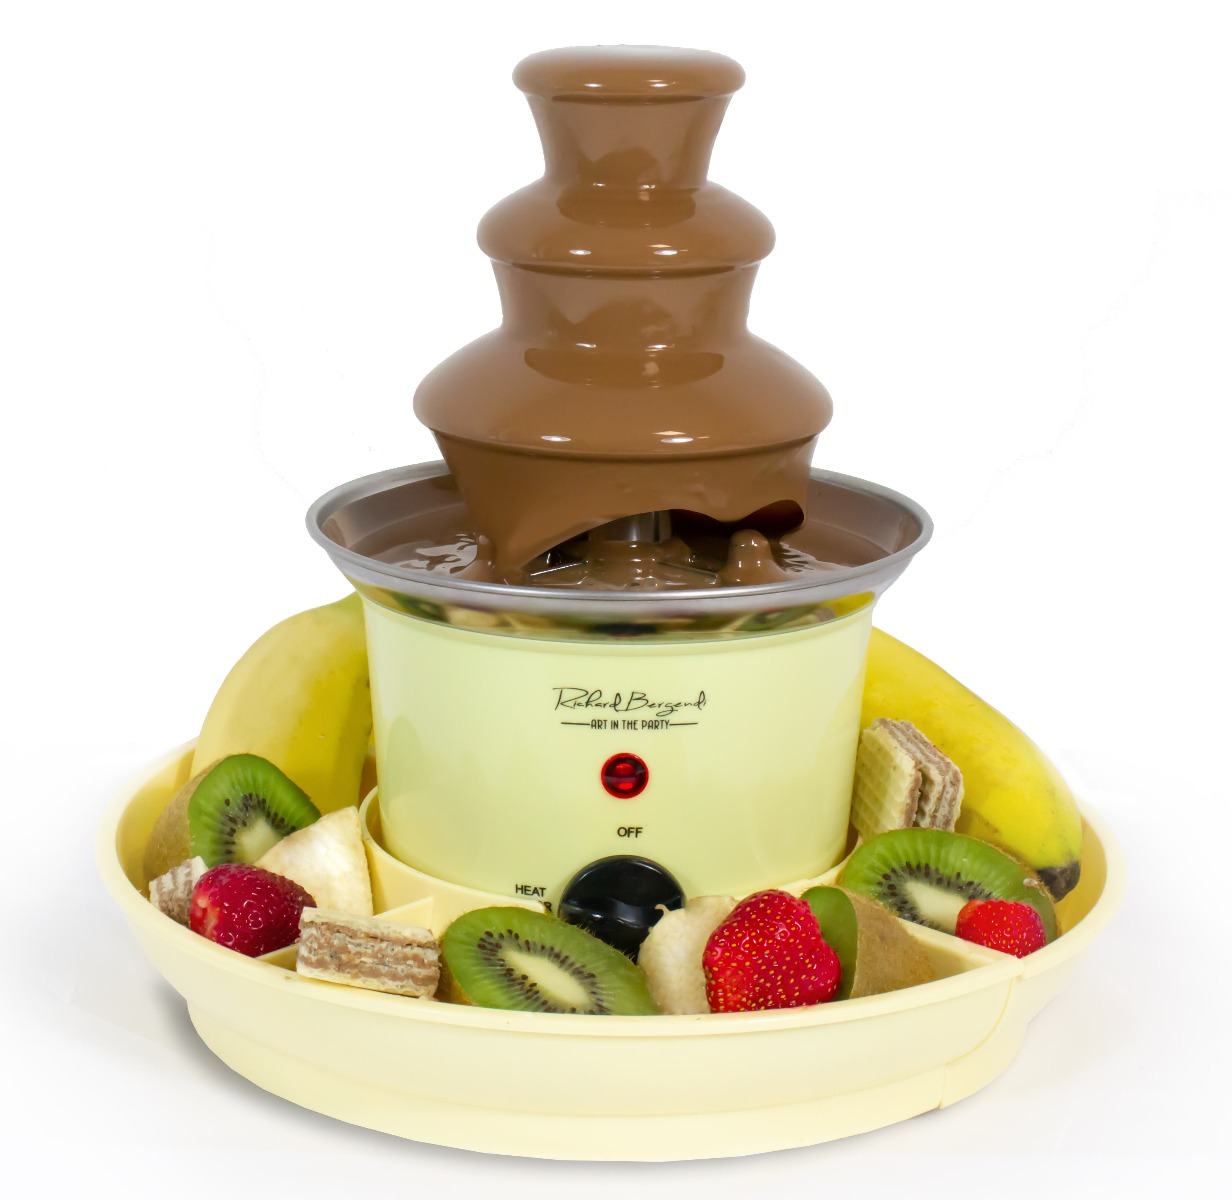 Chocolate Fountain Richard Bergendi PETITE, 240 mm height, with Serving Trays Czekoladowa Fontanna Richard Bergendi PETITE, 240mm wysokości z Tacami do serwowania